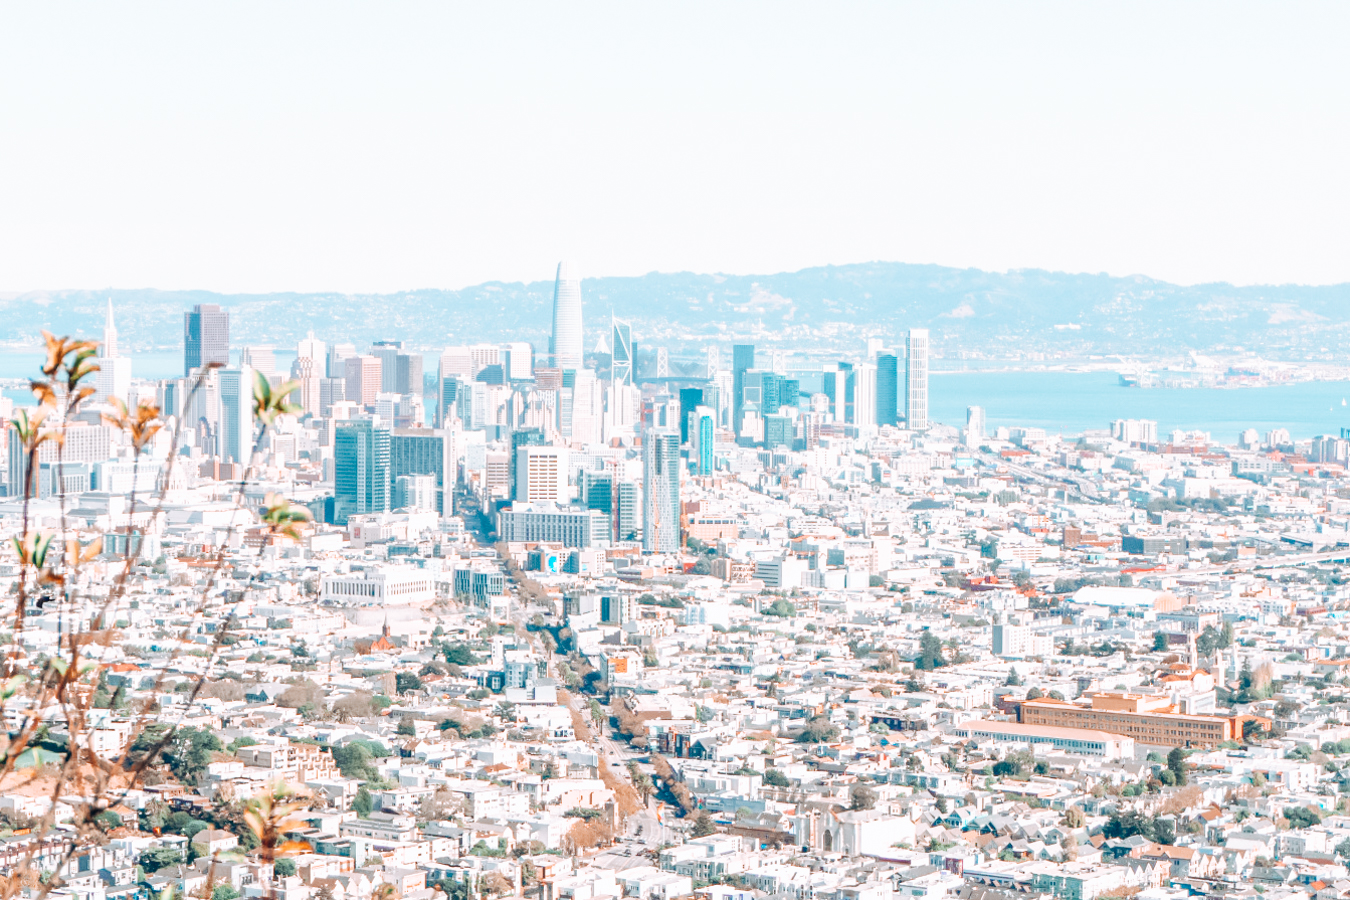 Instagrammable view from Twin Peaks in San Francisco